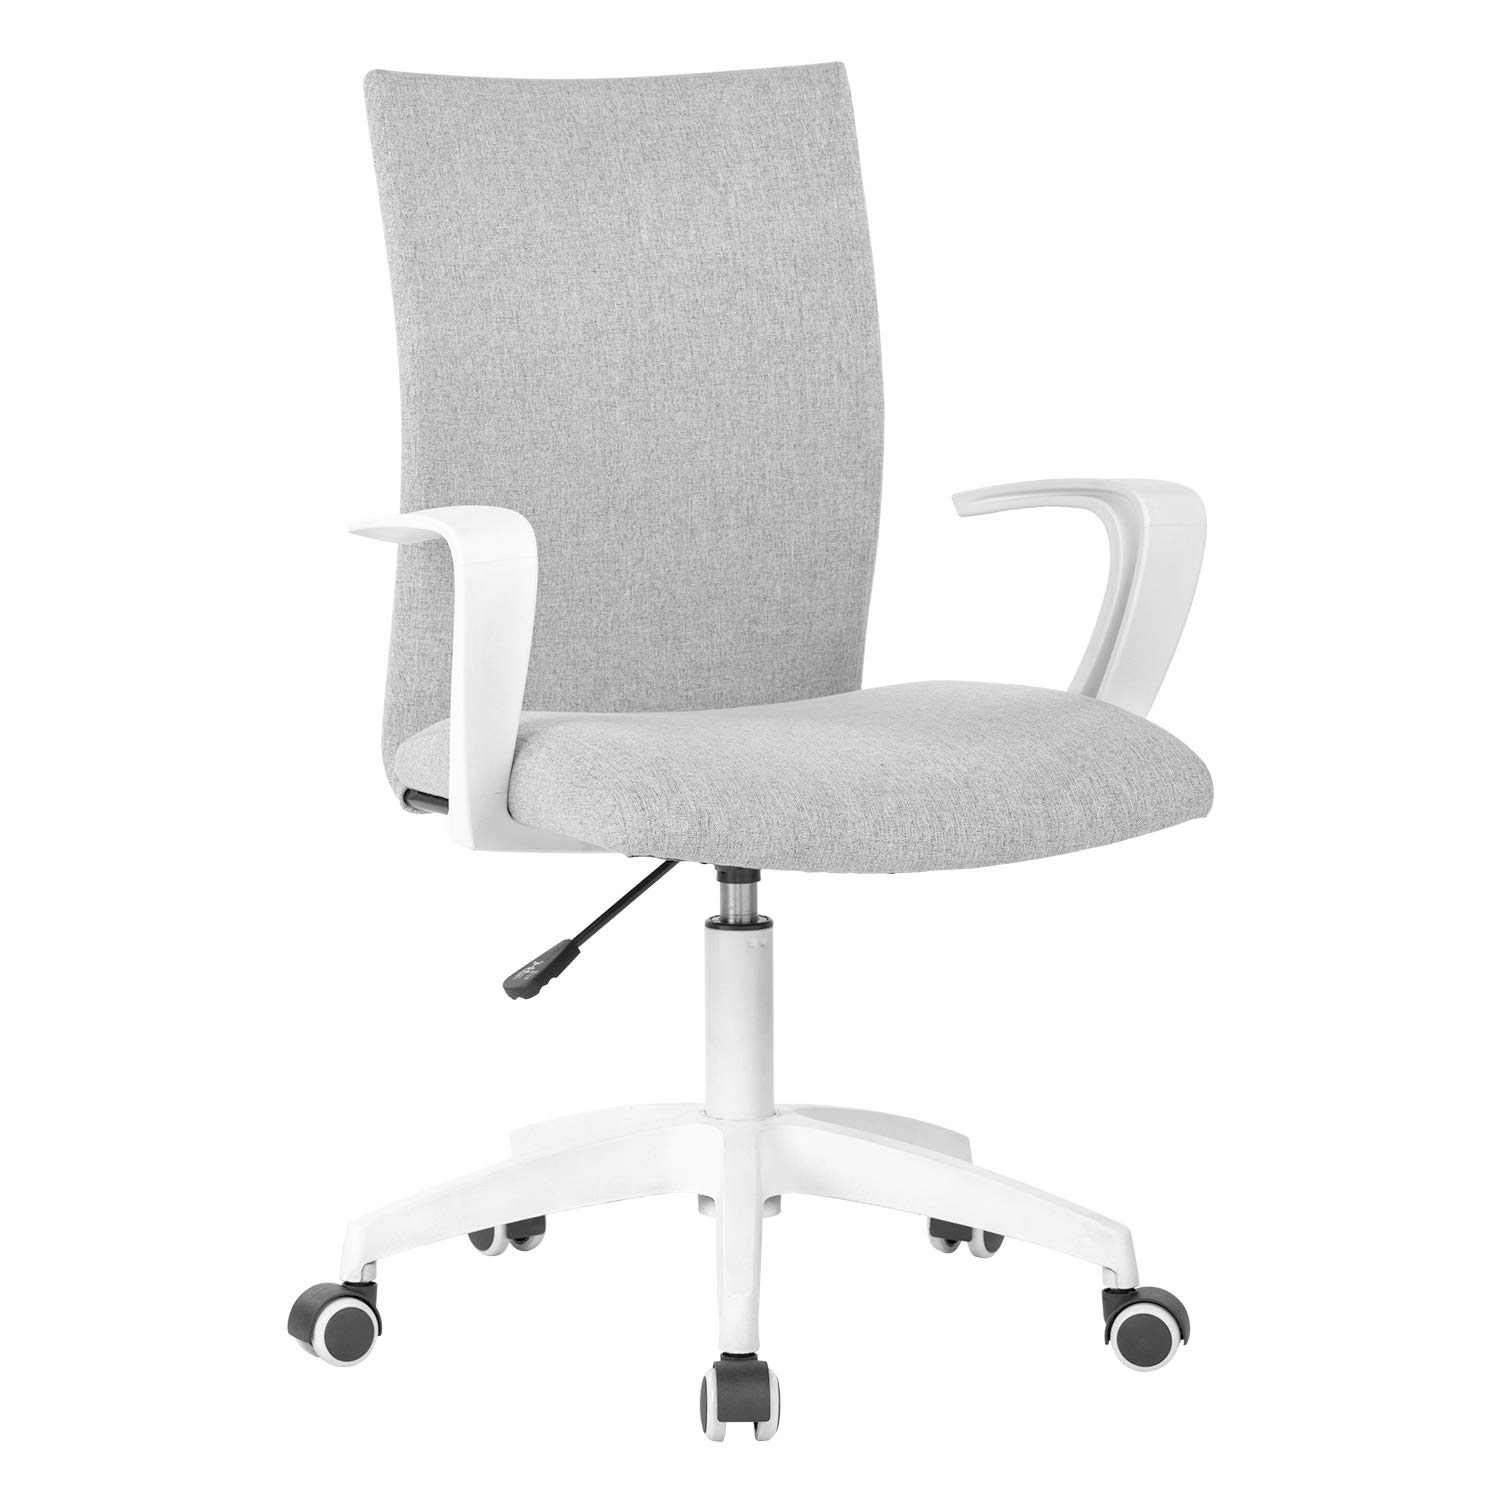 LIANFENG Office Desk Chair with Arms and Adjustable Height, Home Computer Task Chair for Work Space, Grey & White